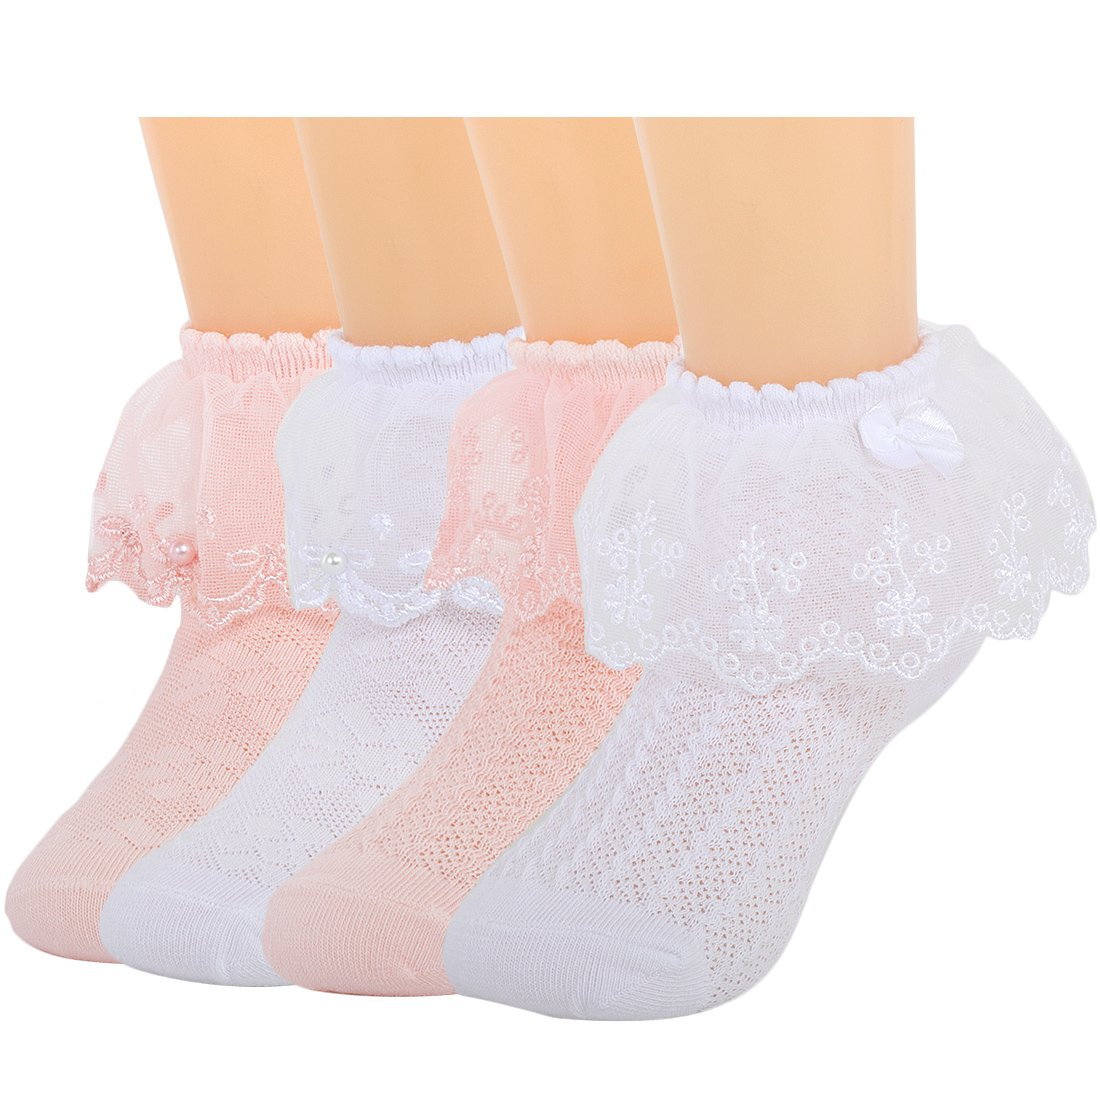 kilofly 4 Pairs Girls Soft Breathable Lace Trim Ruffle Cuff Dress Ankle Socks